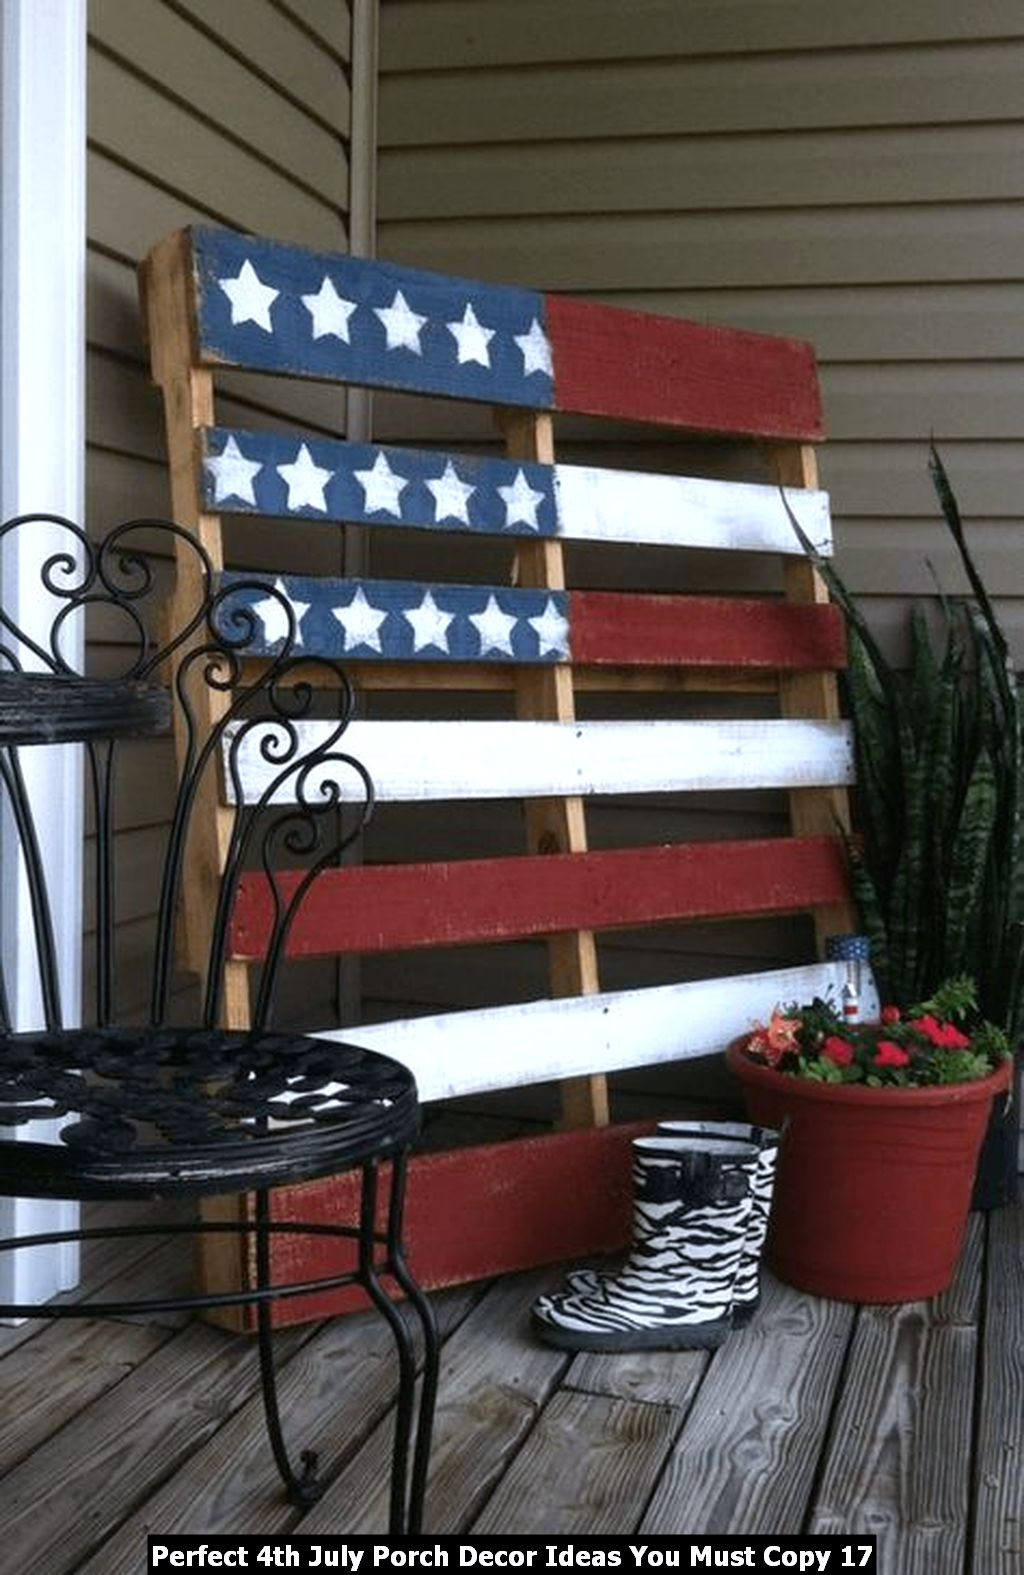 Perfect 4th July Porch Decor Ideas You Must Copy 17